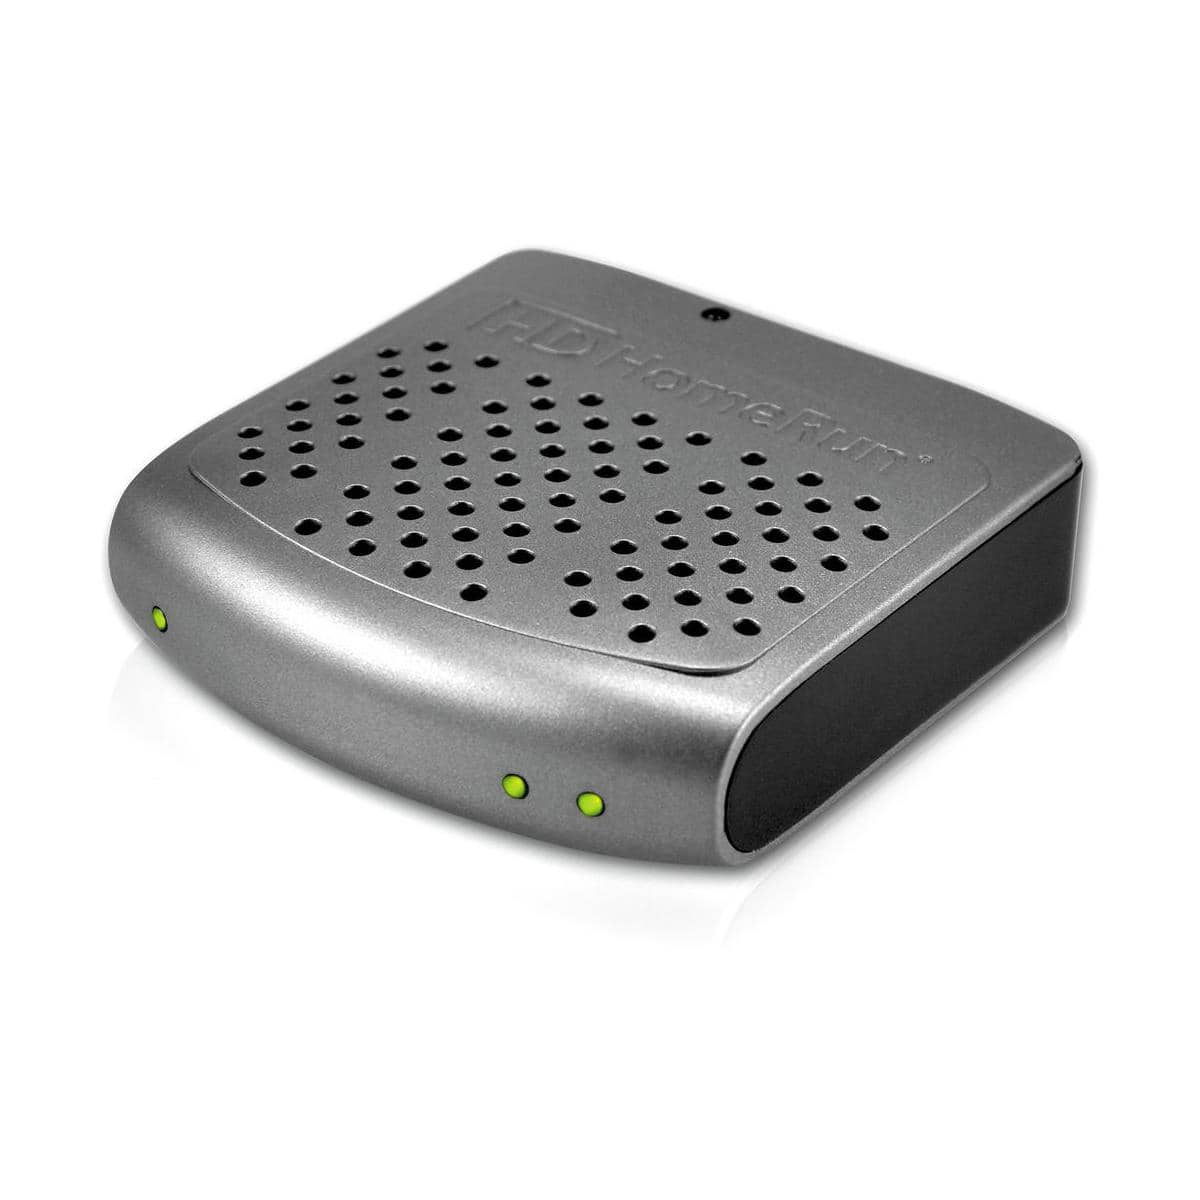 Silicondust HDHomeRun CONNECT (Free Shipping and No Tax for most states) $69.99